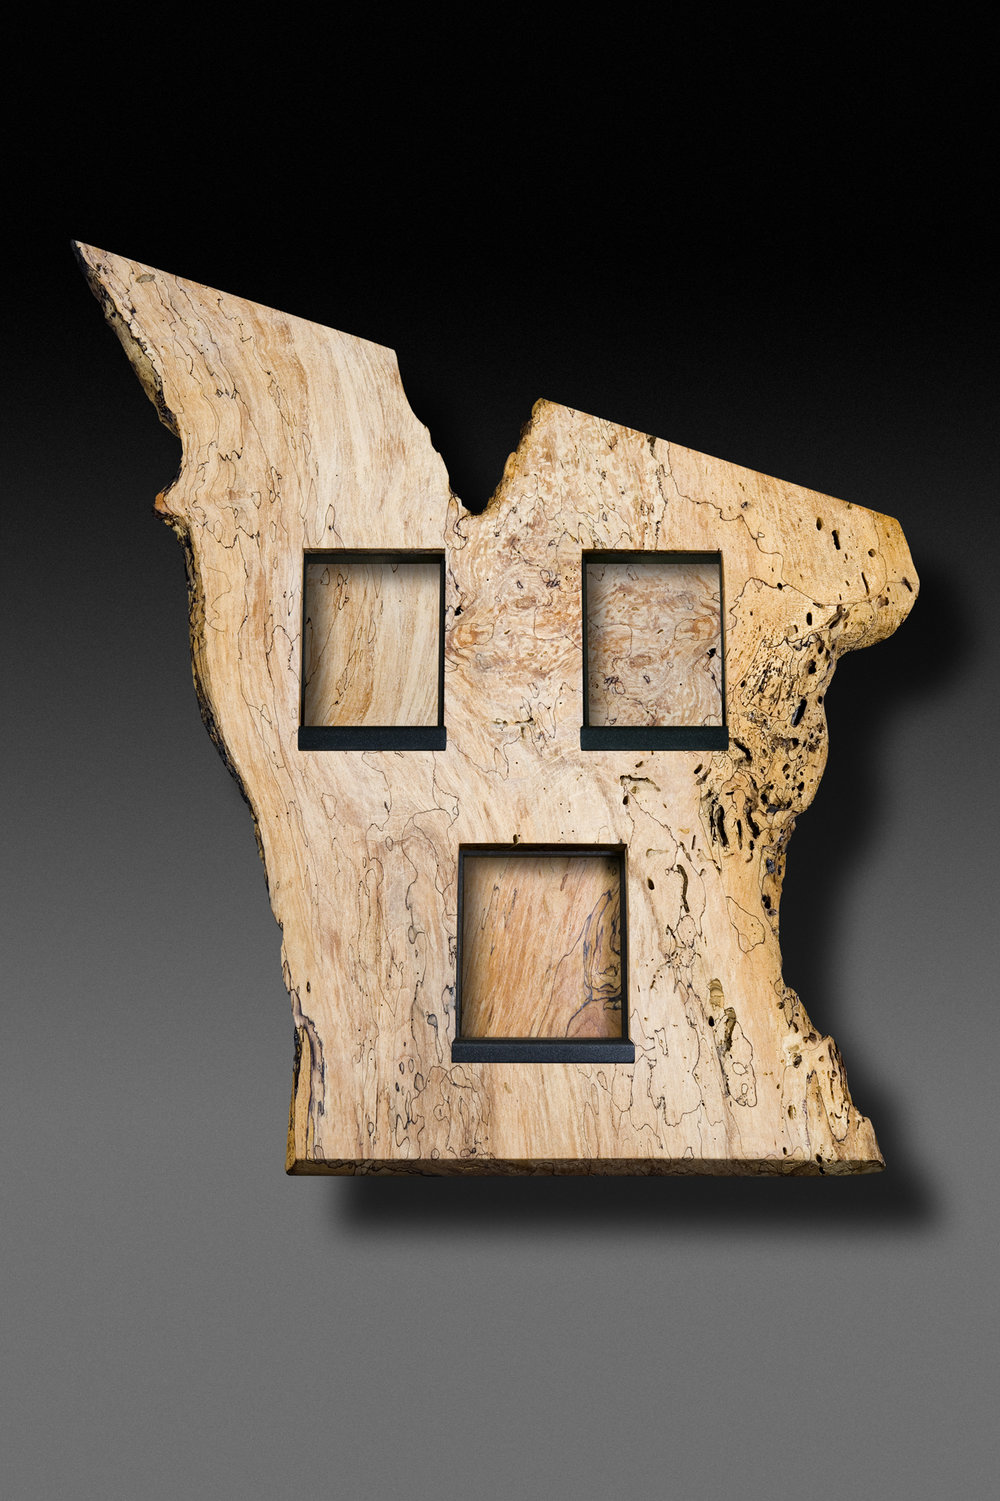 Spalted Maple 4 foot high wall eco-sculpture